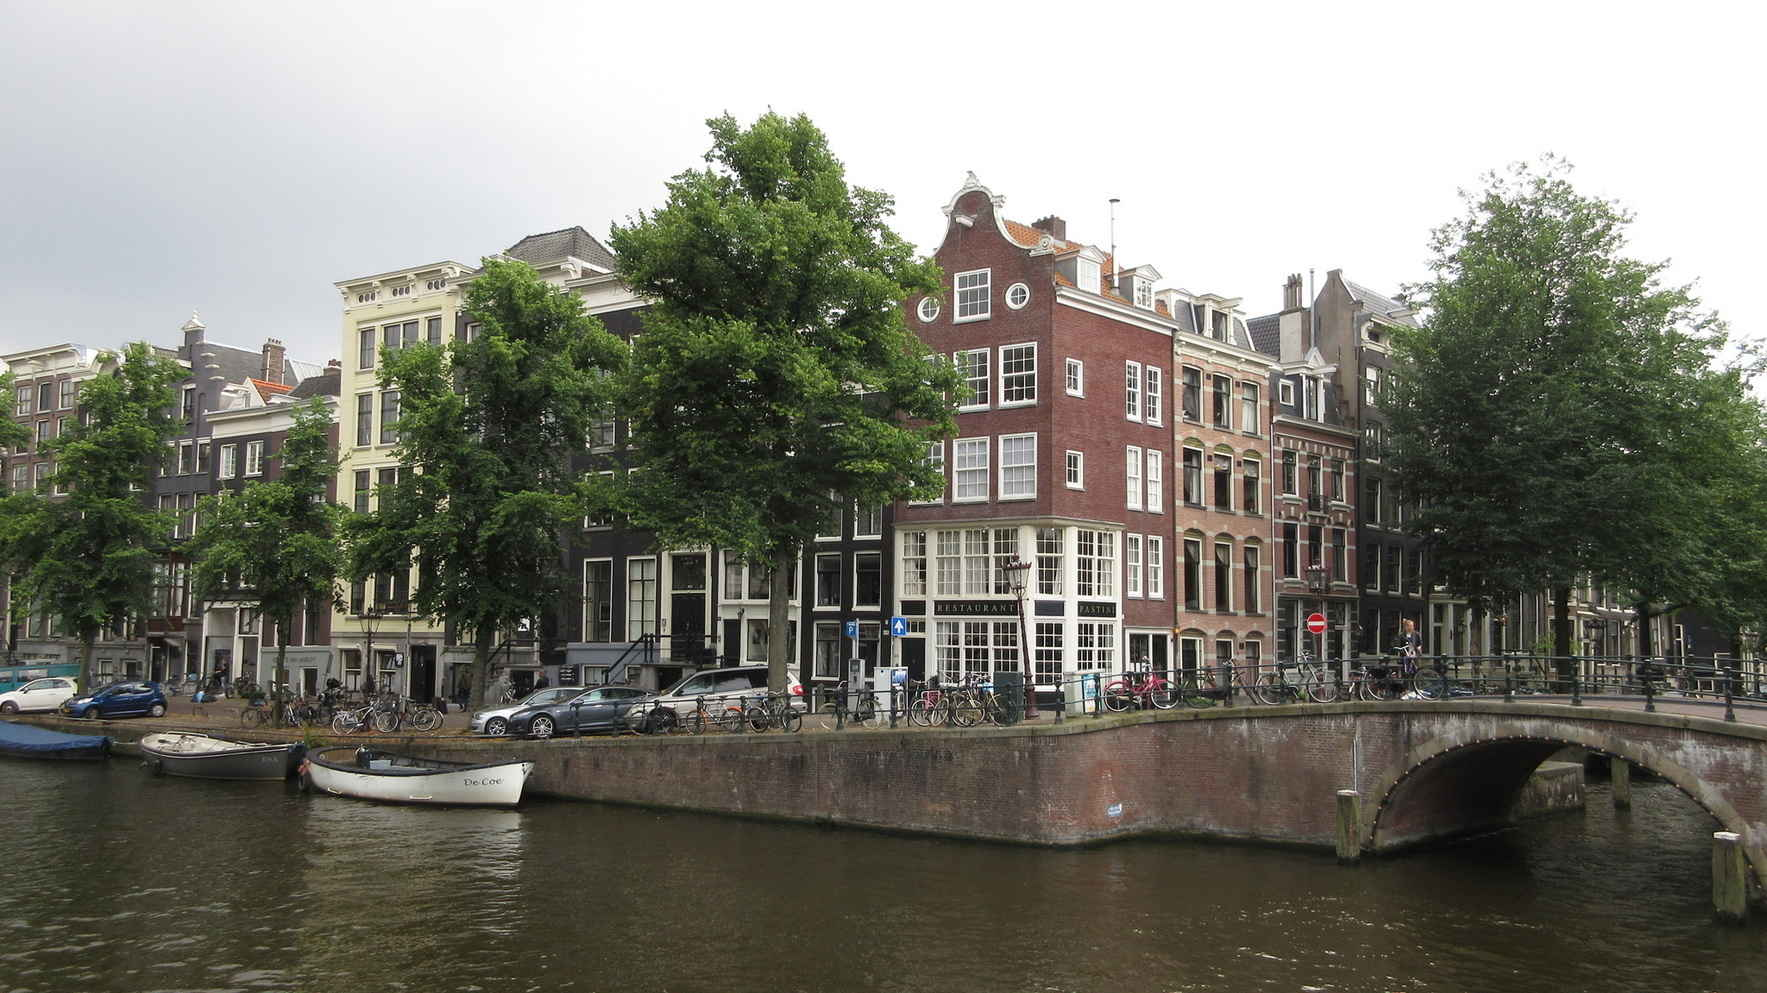 Partner with Tory Almond's ministry in the Netherlands image